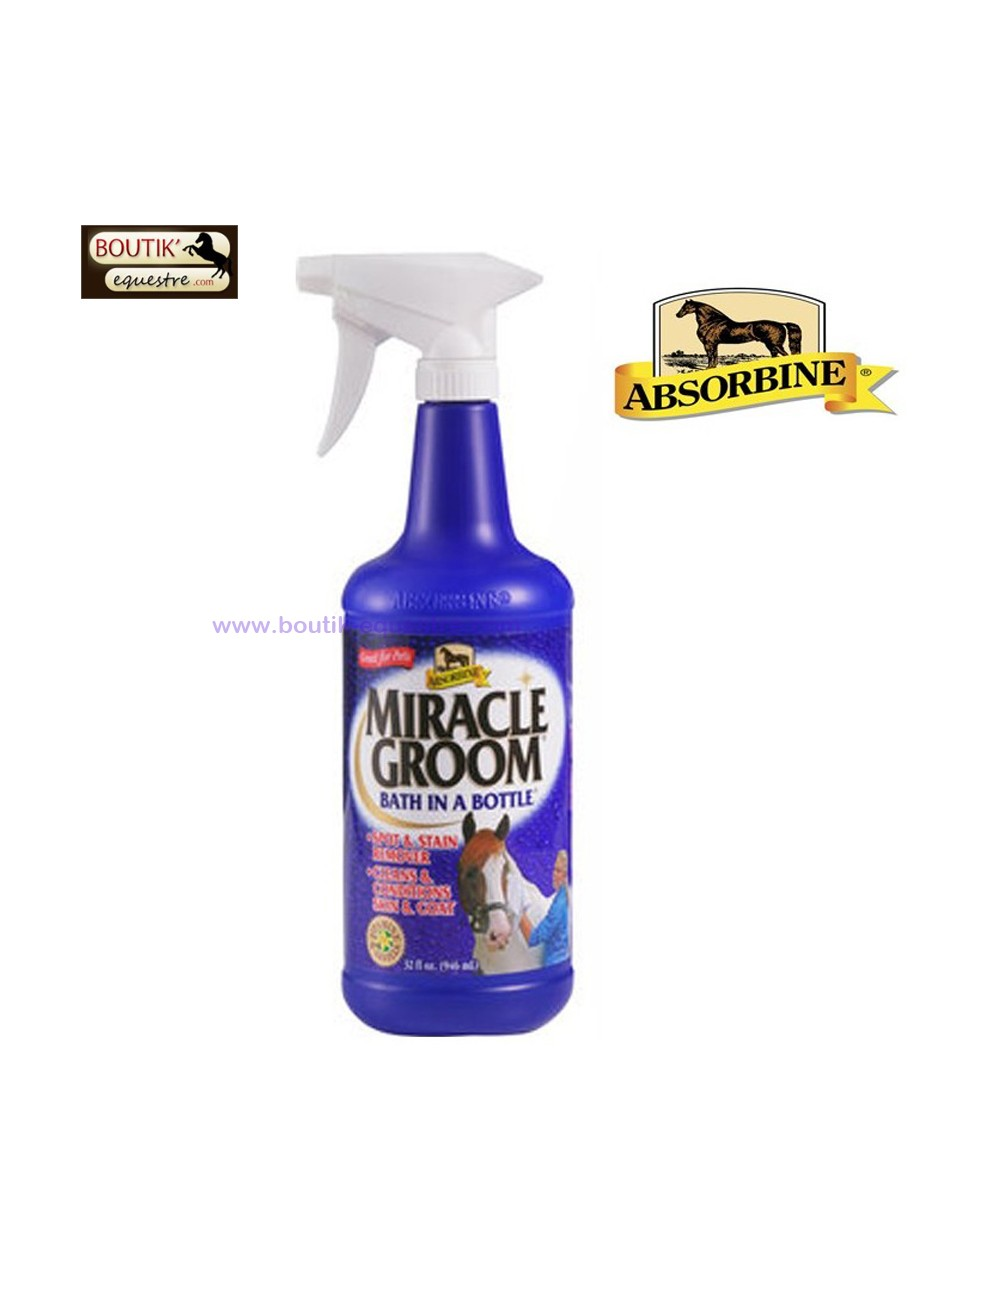 Miracle Groom Absorbine